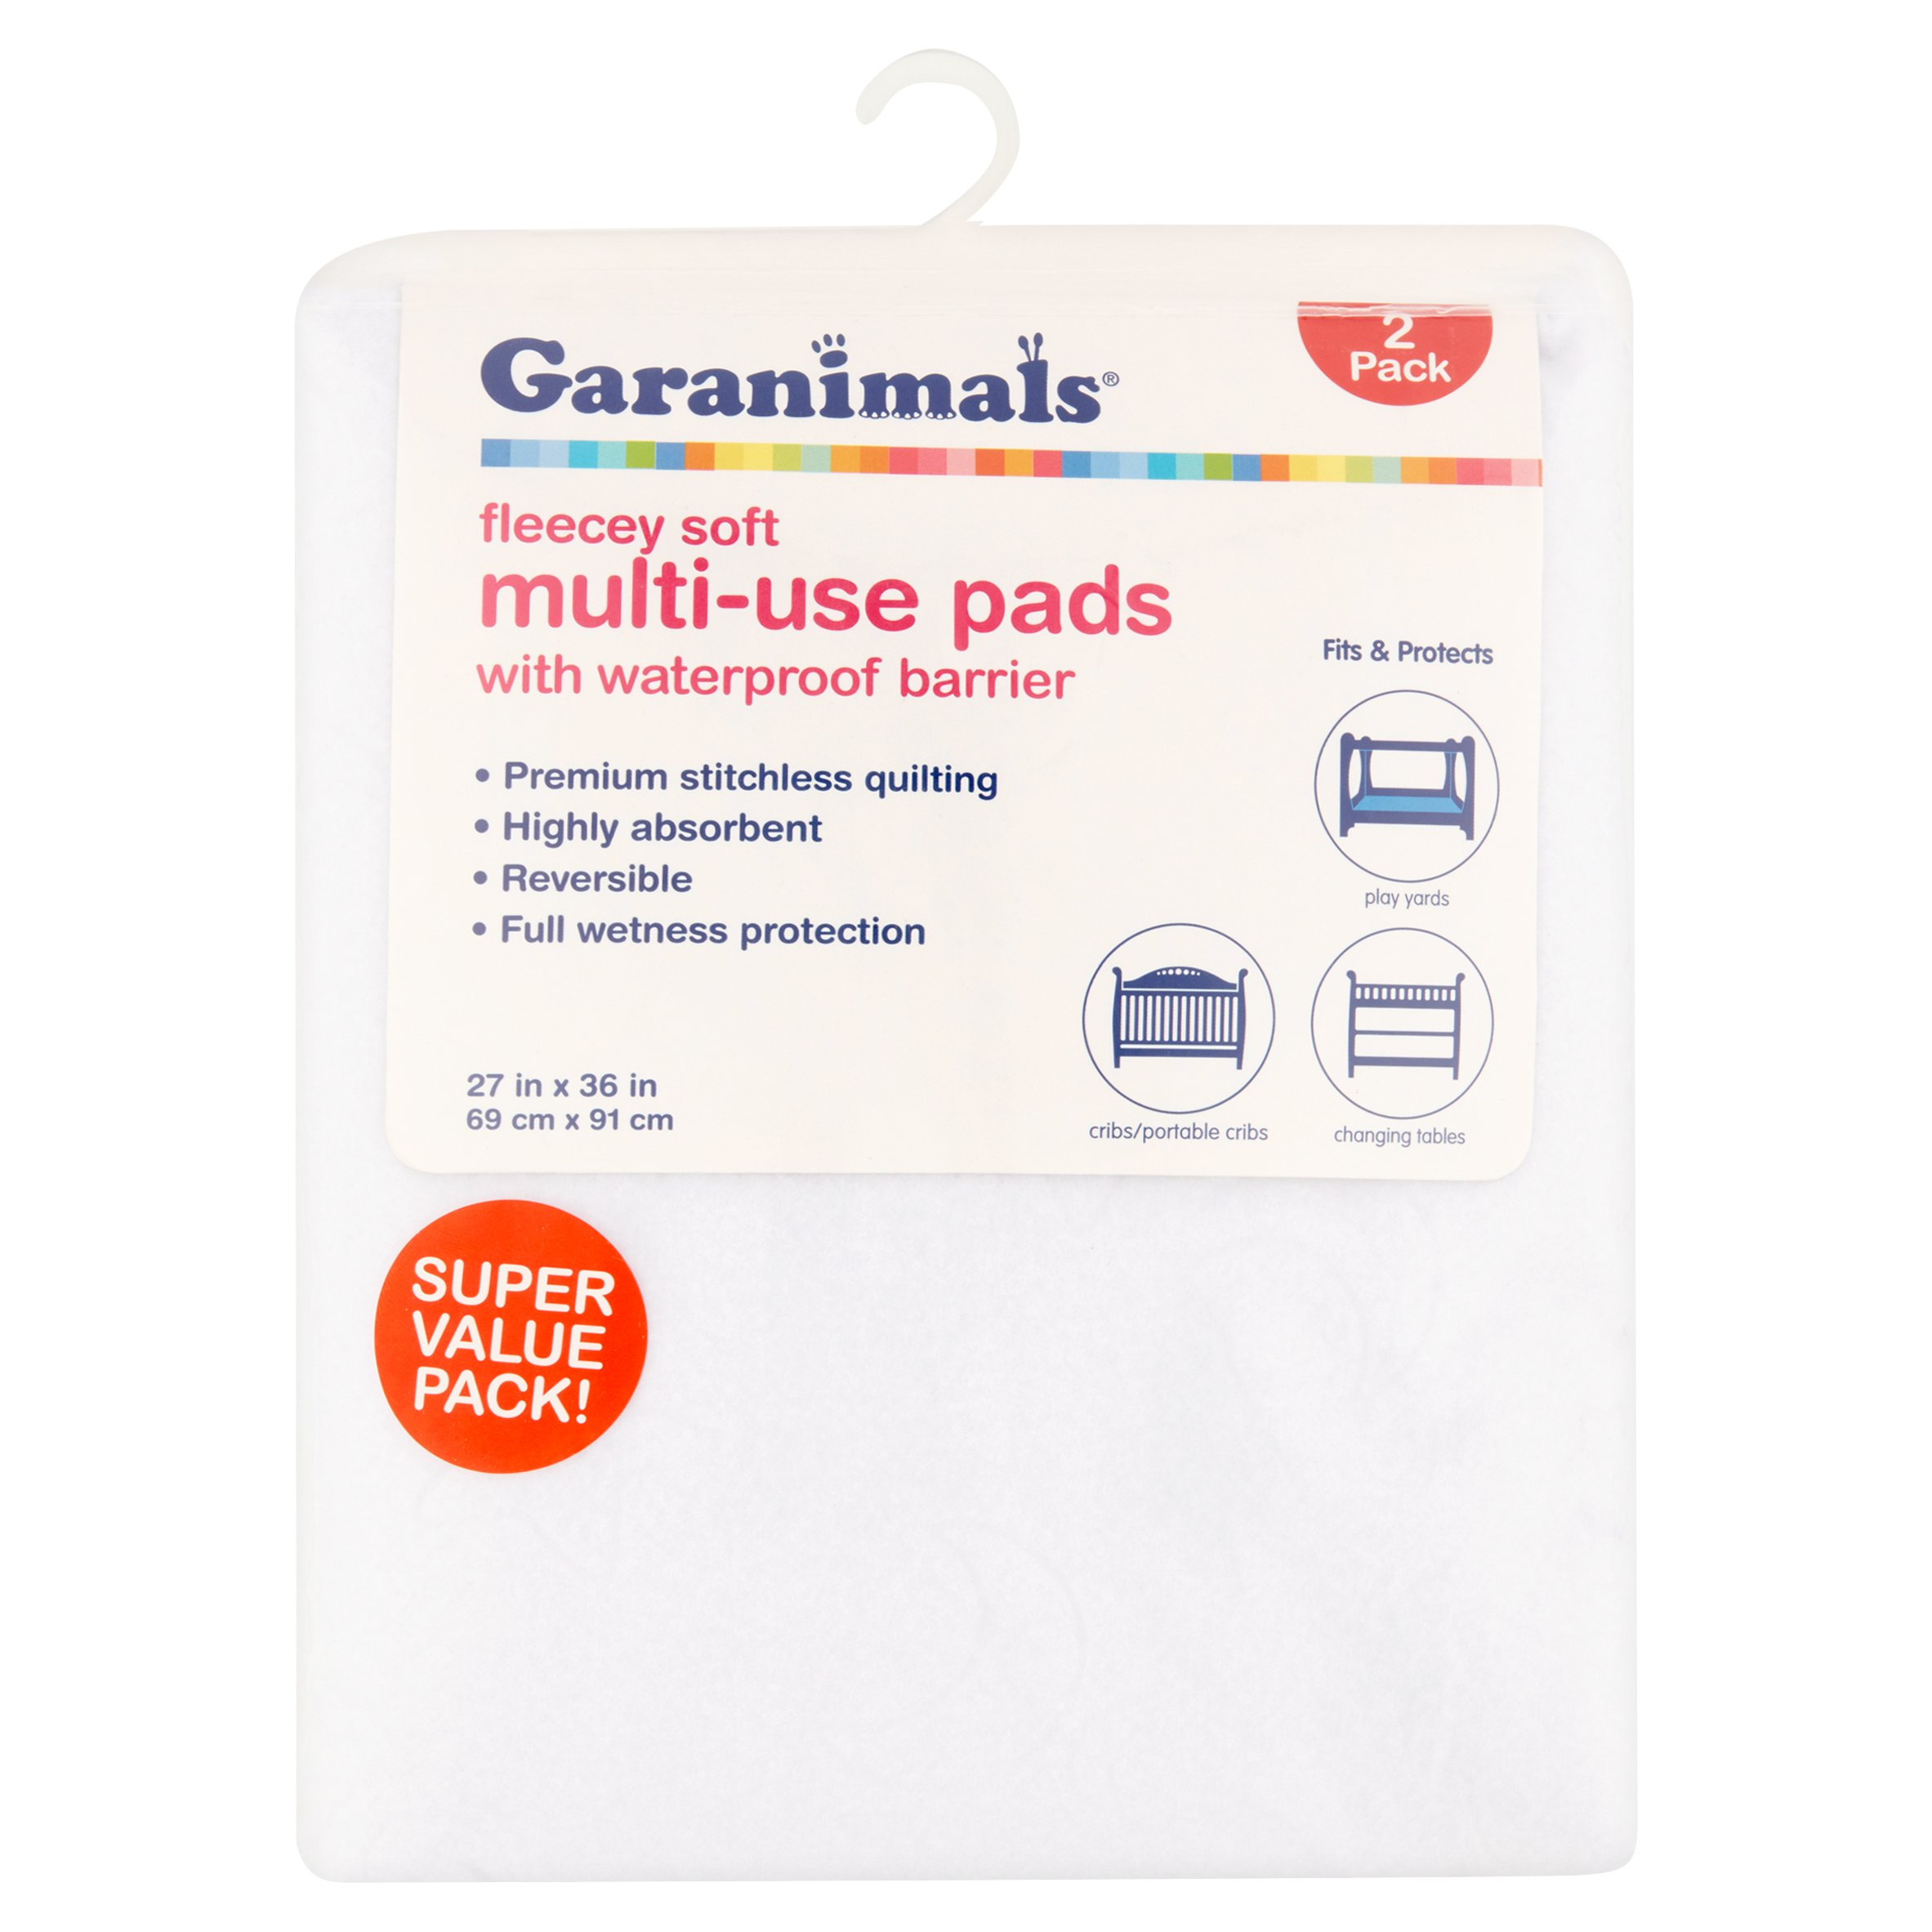 Garanimals Fleecey Soft Multi-Use Pads with Waterproof Barrier Super Value Pack! 2 Pack